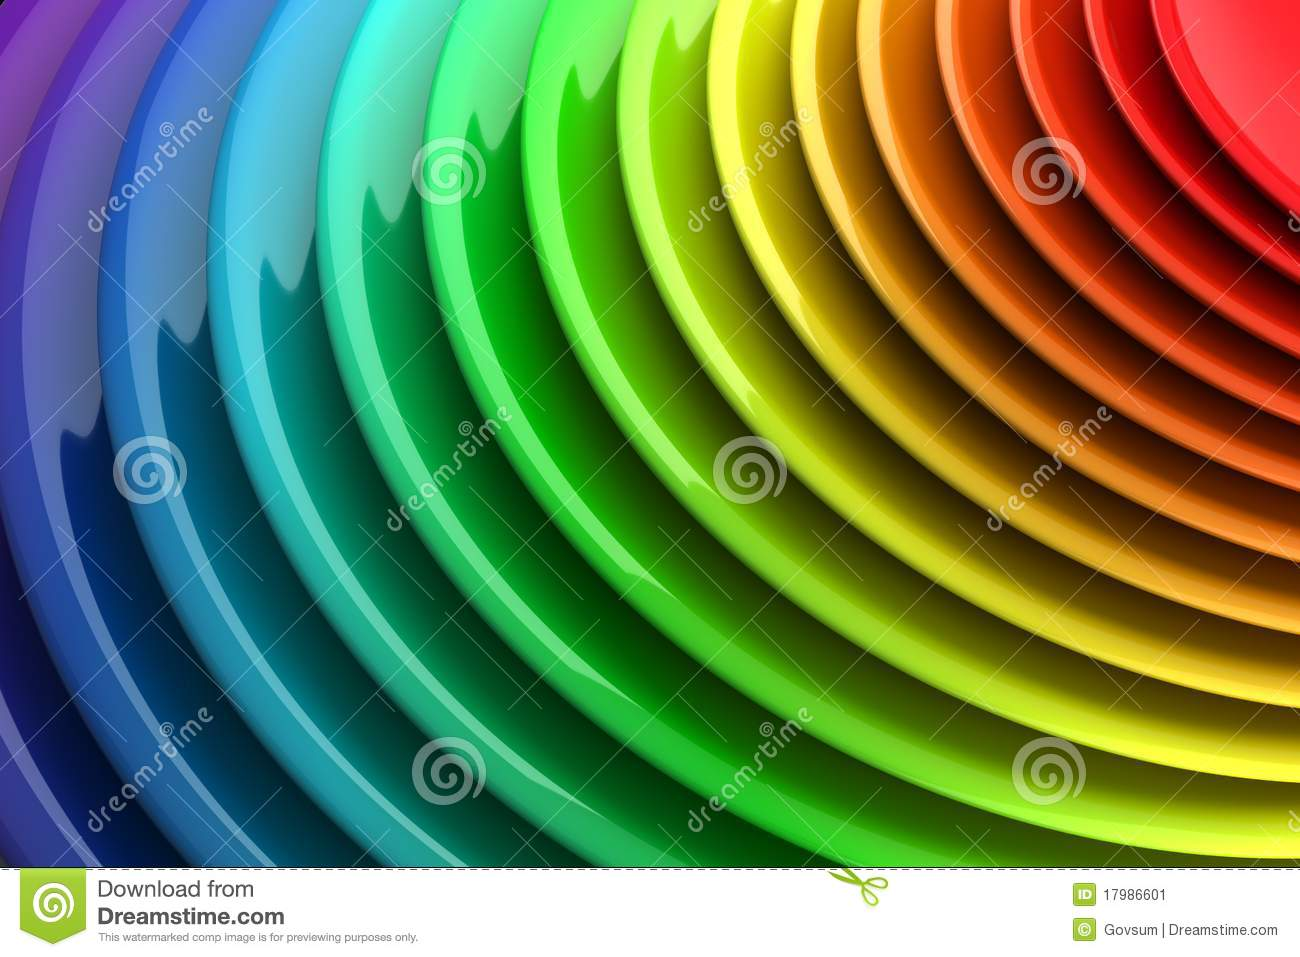 Vibrant color abstract background stock image image - Vibrant background ...